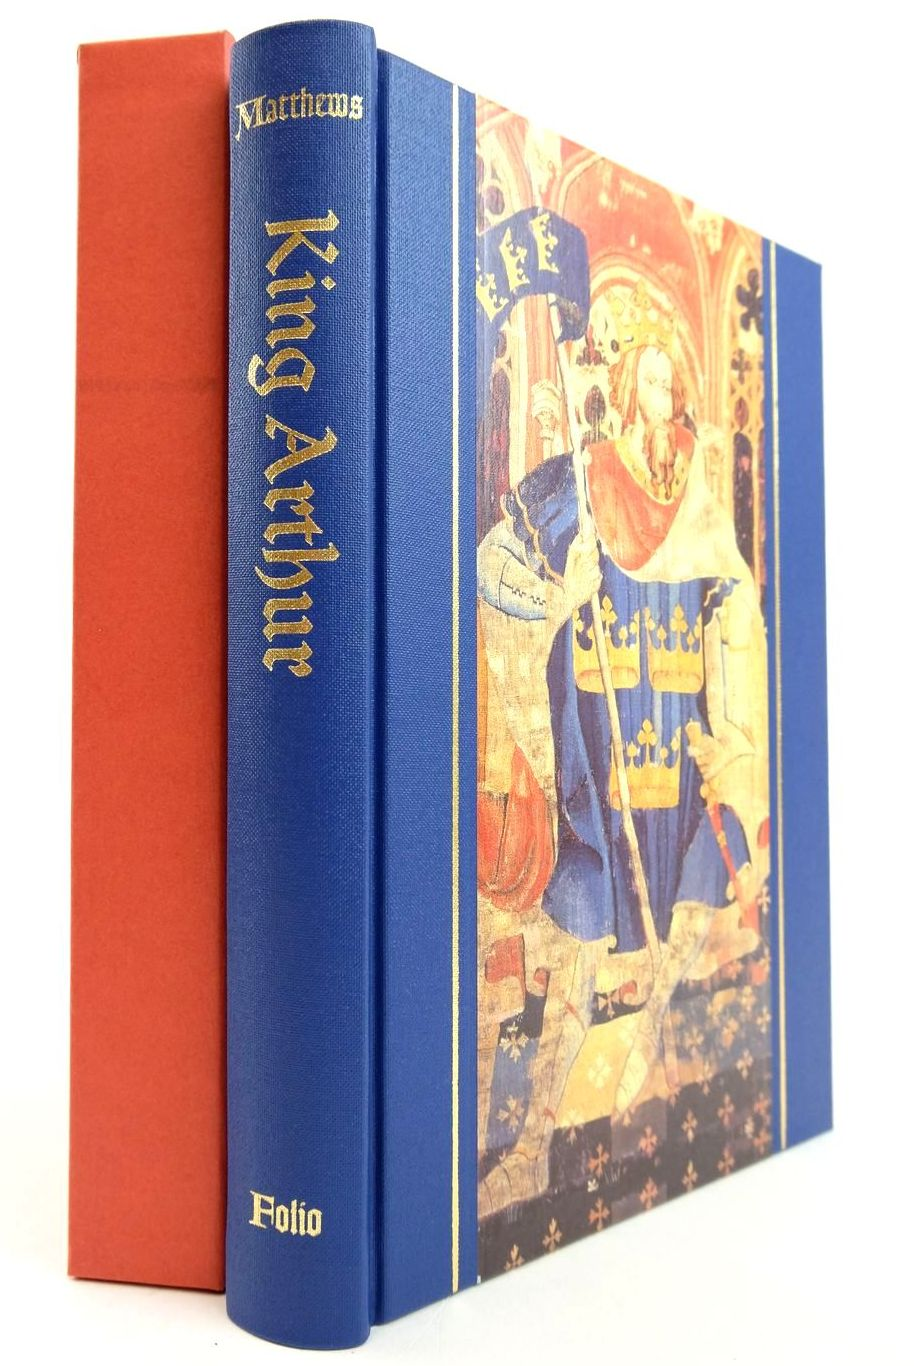 Photo of KING ARTHUR HISTORY & LEGEND written by Matthews, John Matthews, Caitlin published by Folio Society (STOCK CODE: 2133159)  for sale by Stella & Rose's Books